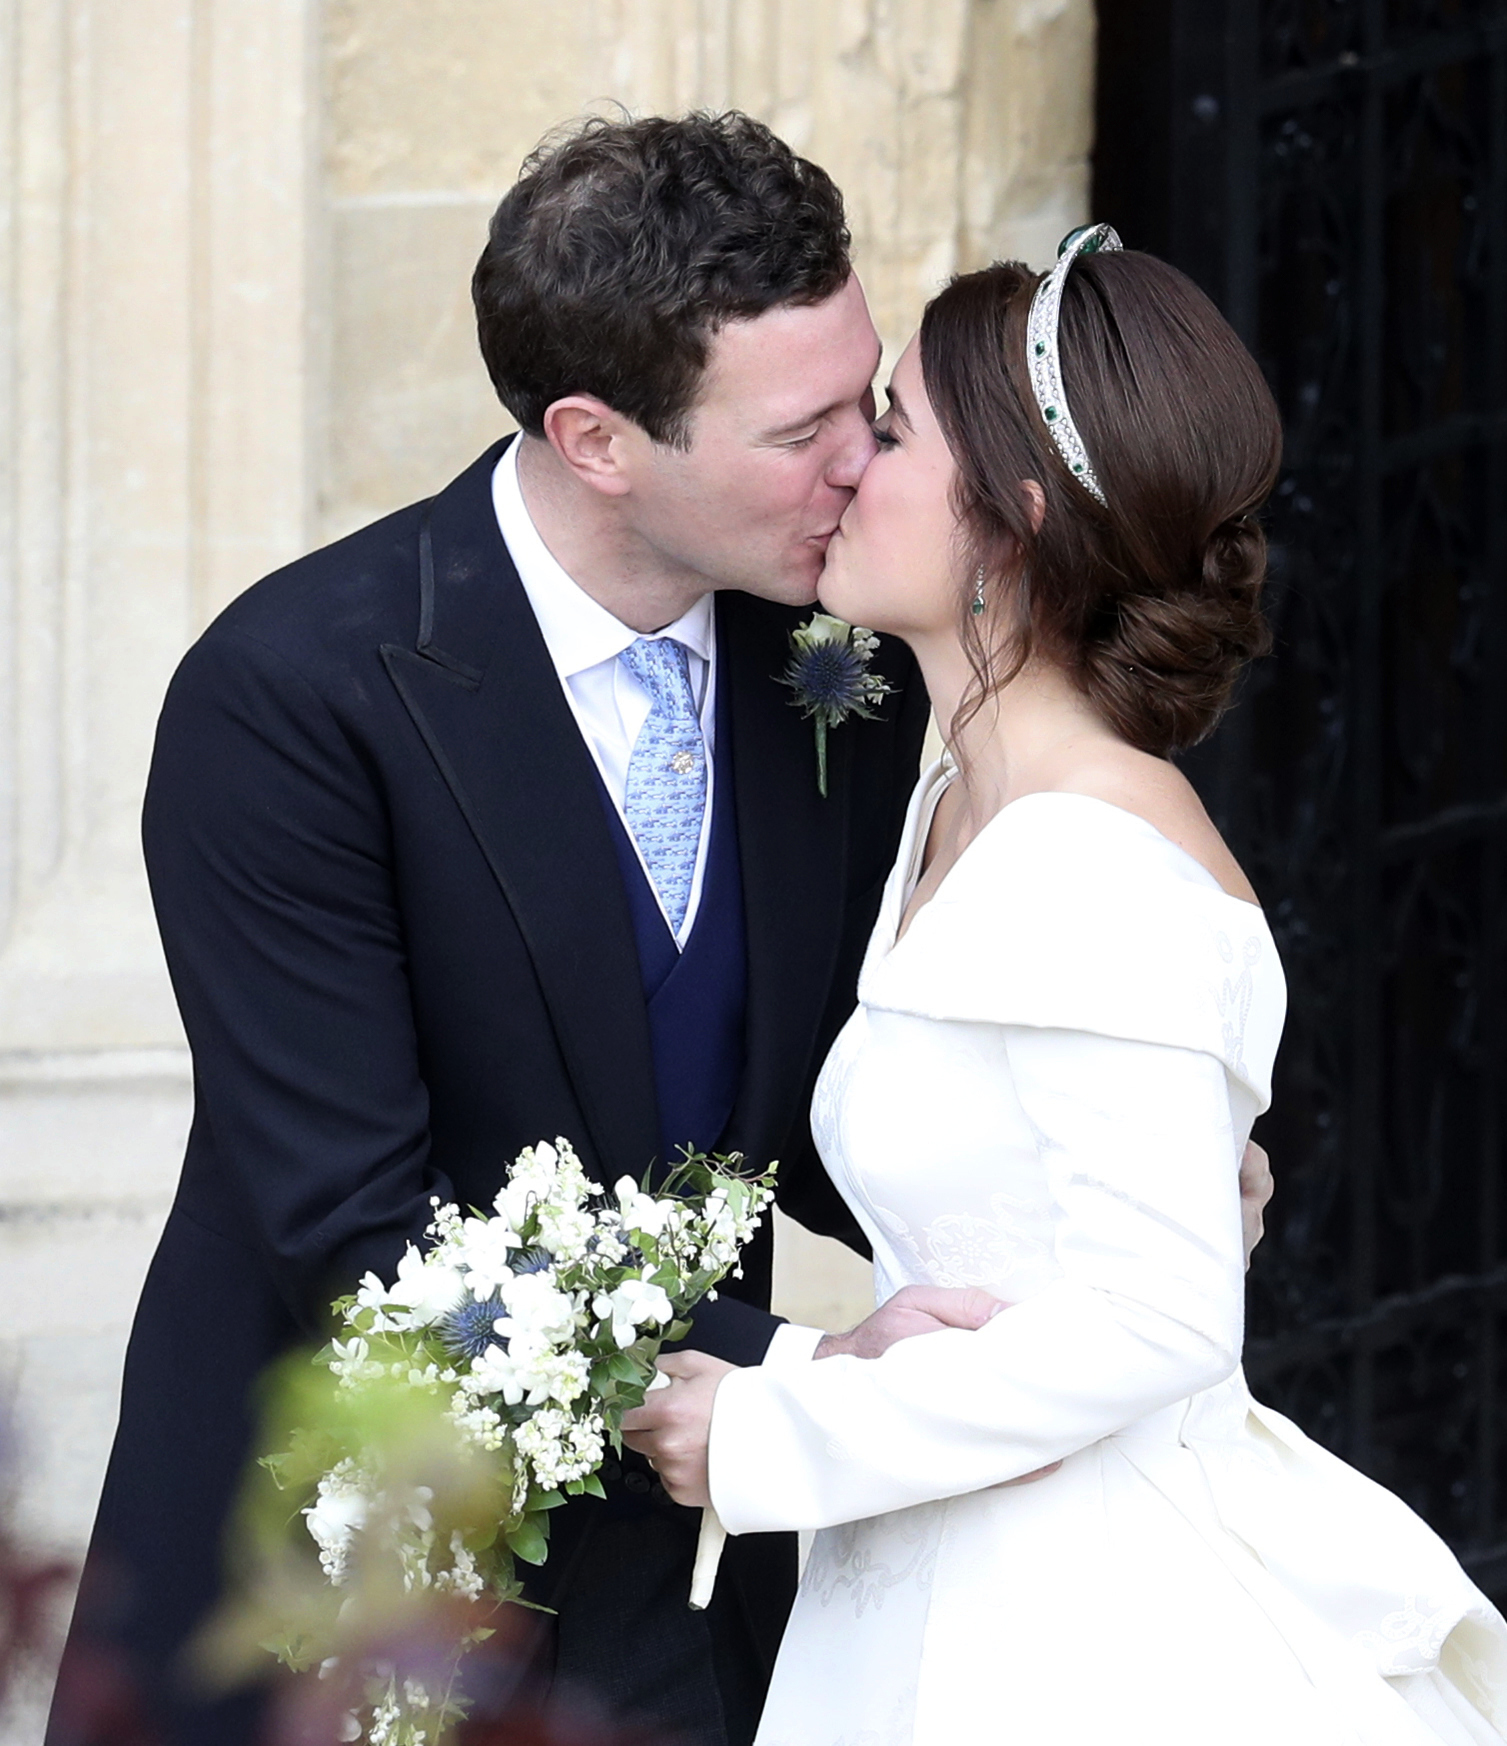 <div class='meta'><div class='origin-logo' data-origin='none'></div><span class='caption-text' data-credit='Andrew Matthews, Pool via AP'>Princess Eugenie and her new husband Jack Brooksbank kiss after their wedding ceremony as they leave St George's Chapel, Windsor Castle, near London, England, Friday Oct. 12, 2018.</span></div>